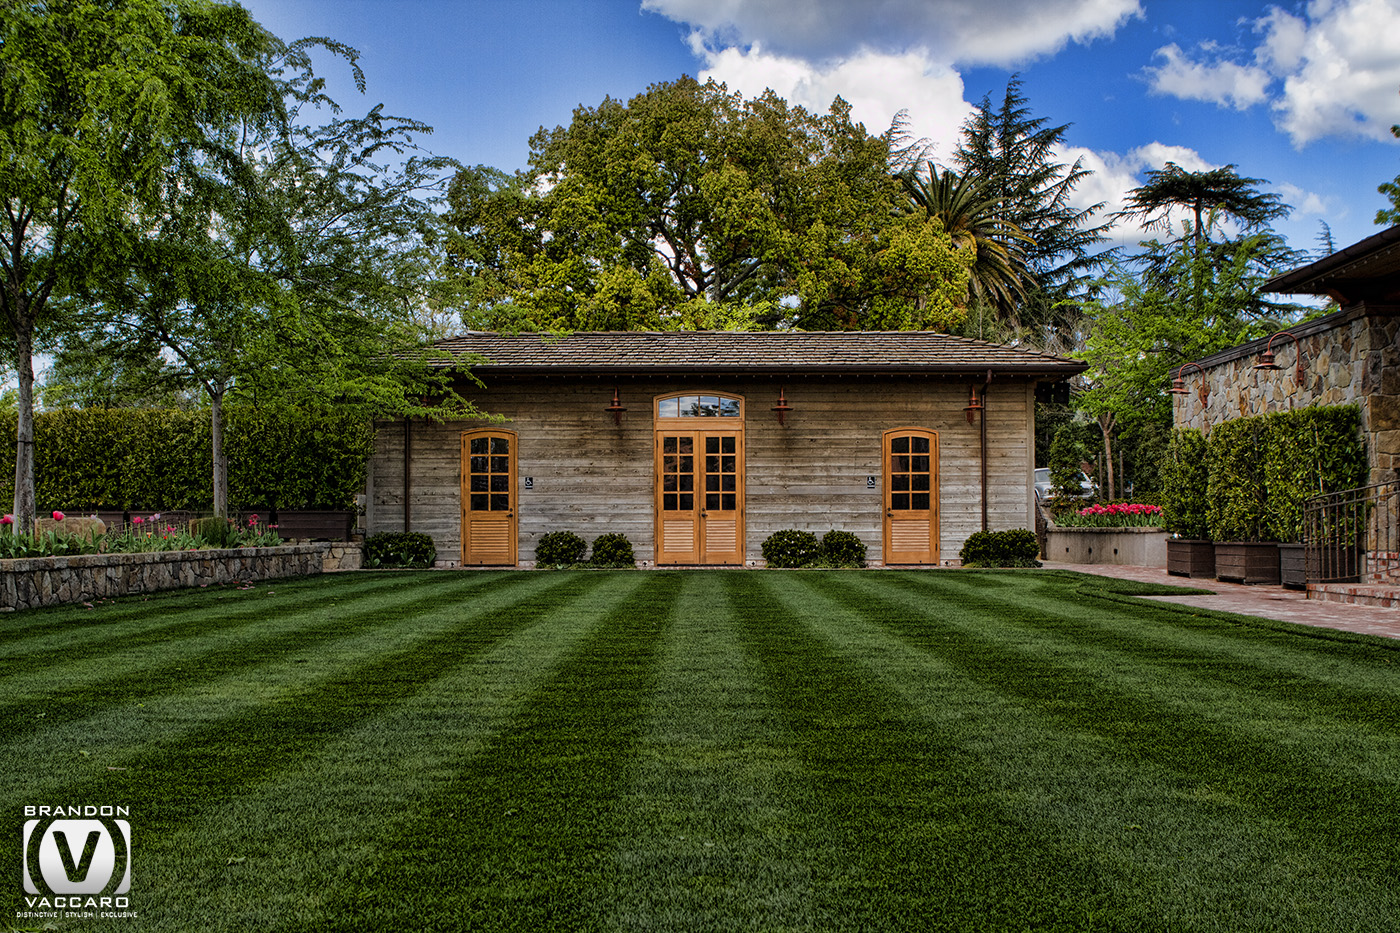 architecture-vintage-estate-napa-valley-commercial-photography.jpg